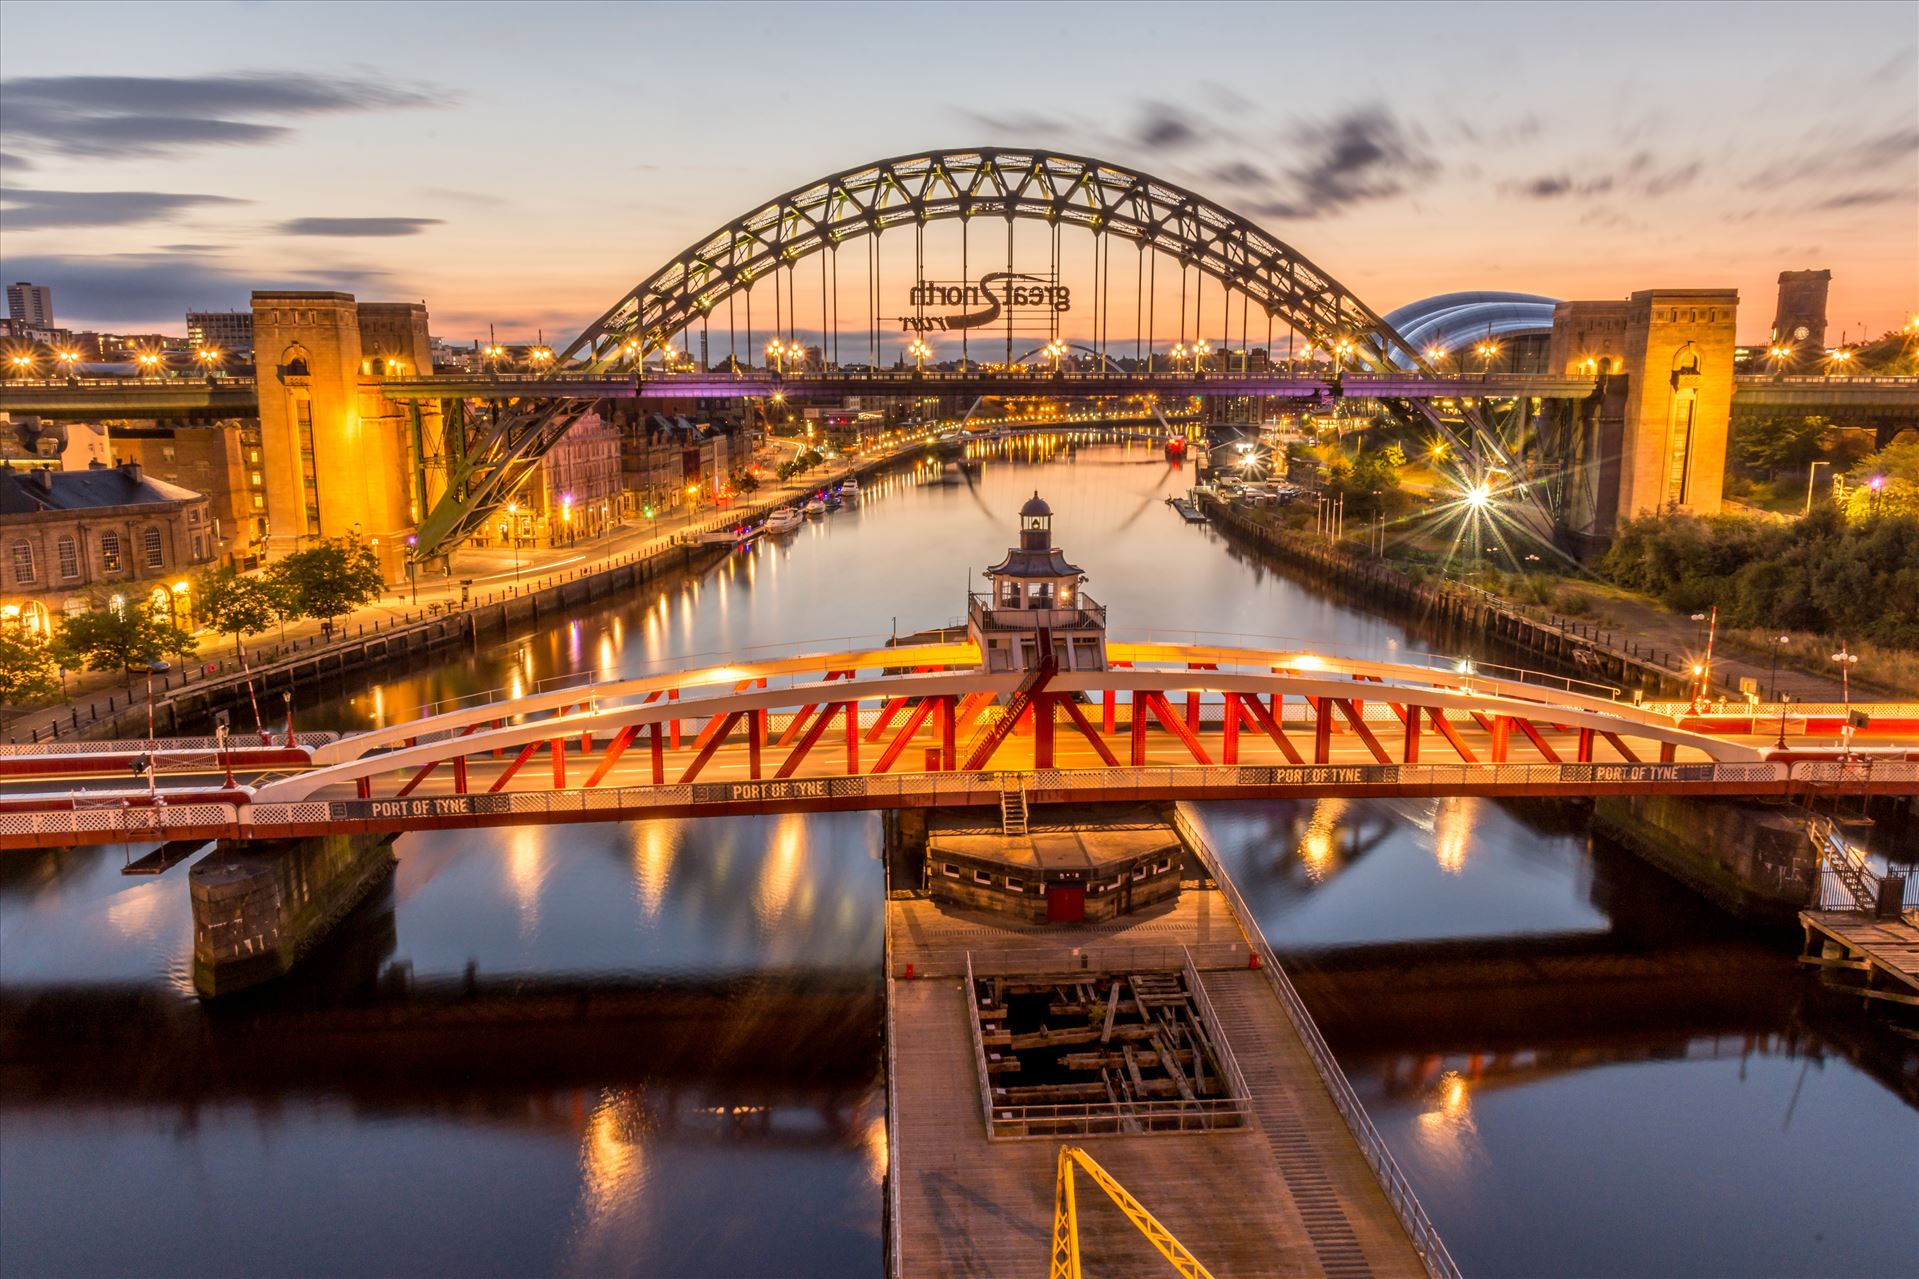 The River Tyne - In the foreground is the Swing bridge, at the top is the world famous Tyne bridge & under that is the Millennium bridge. by philreay